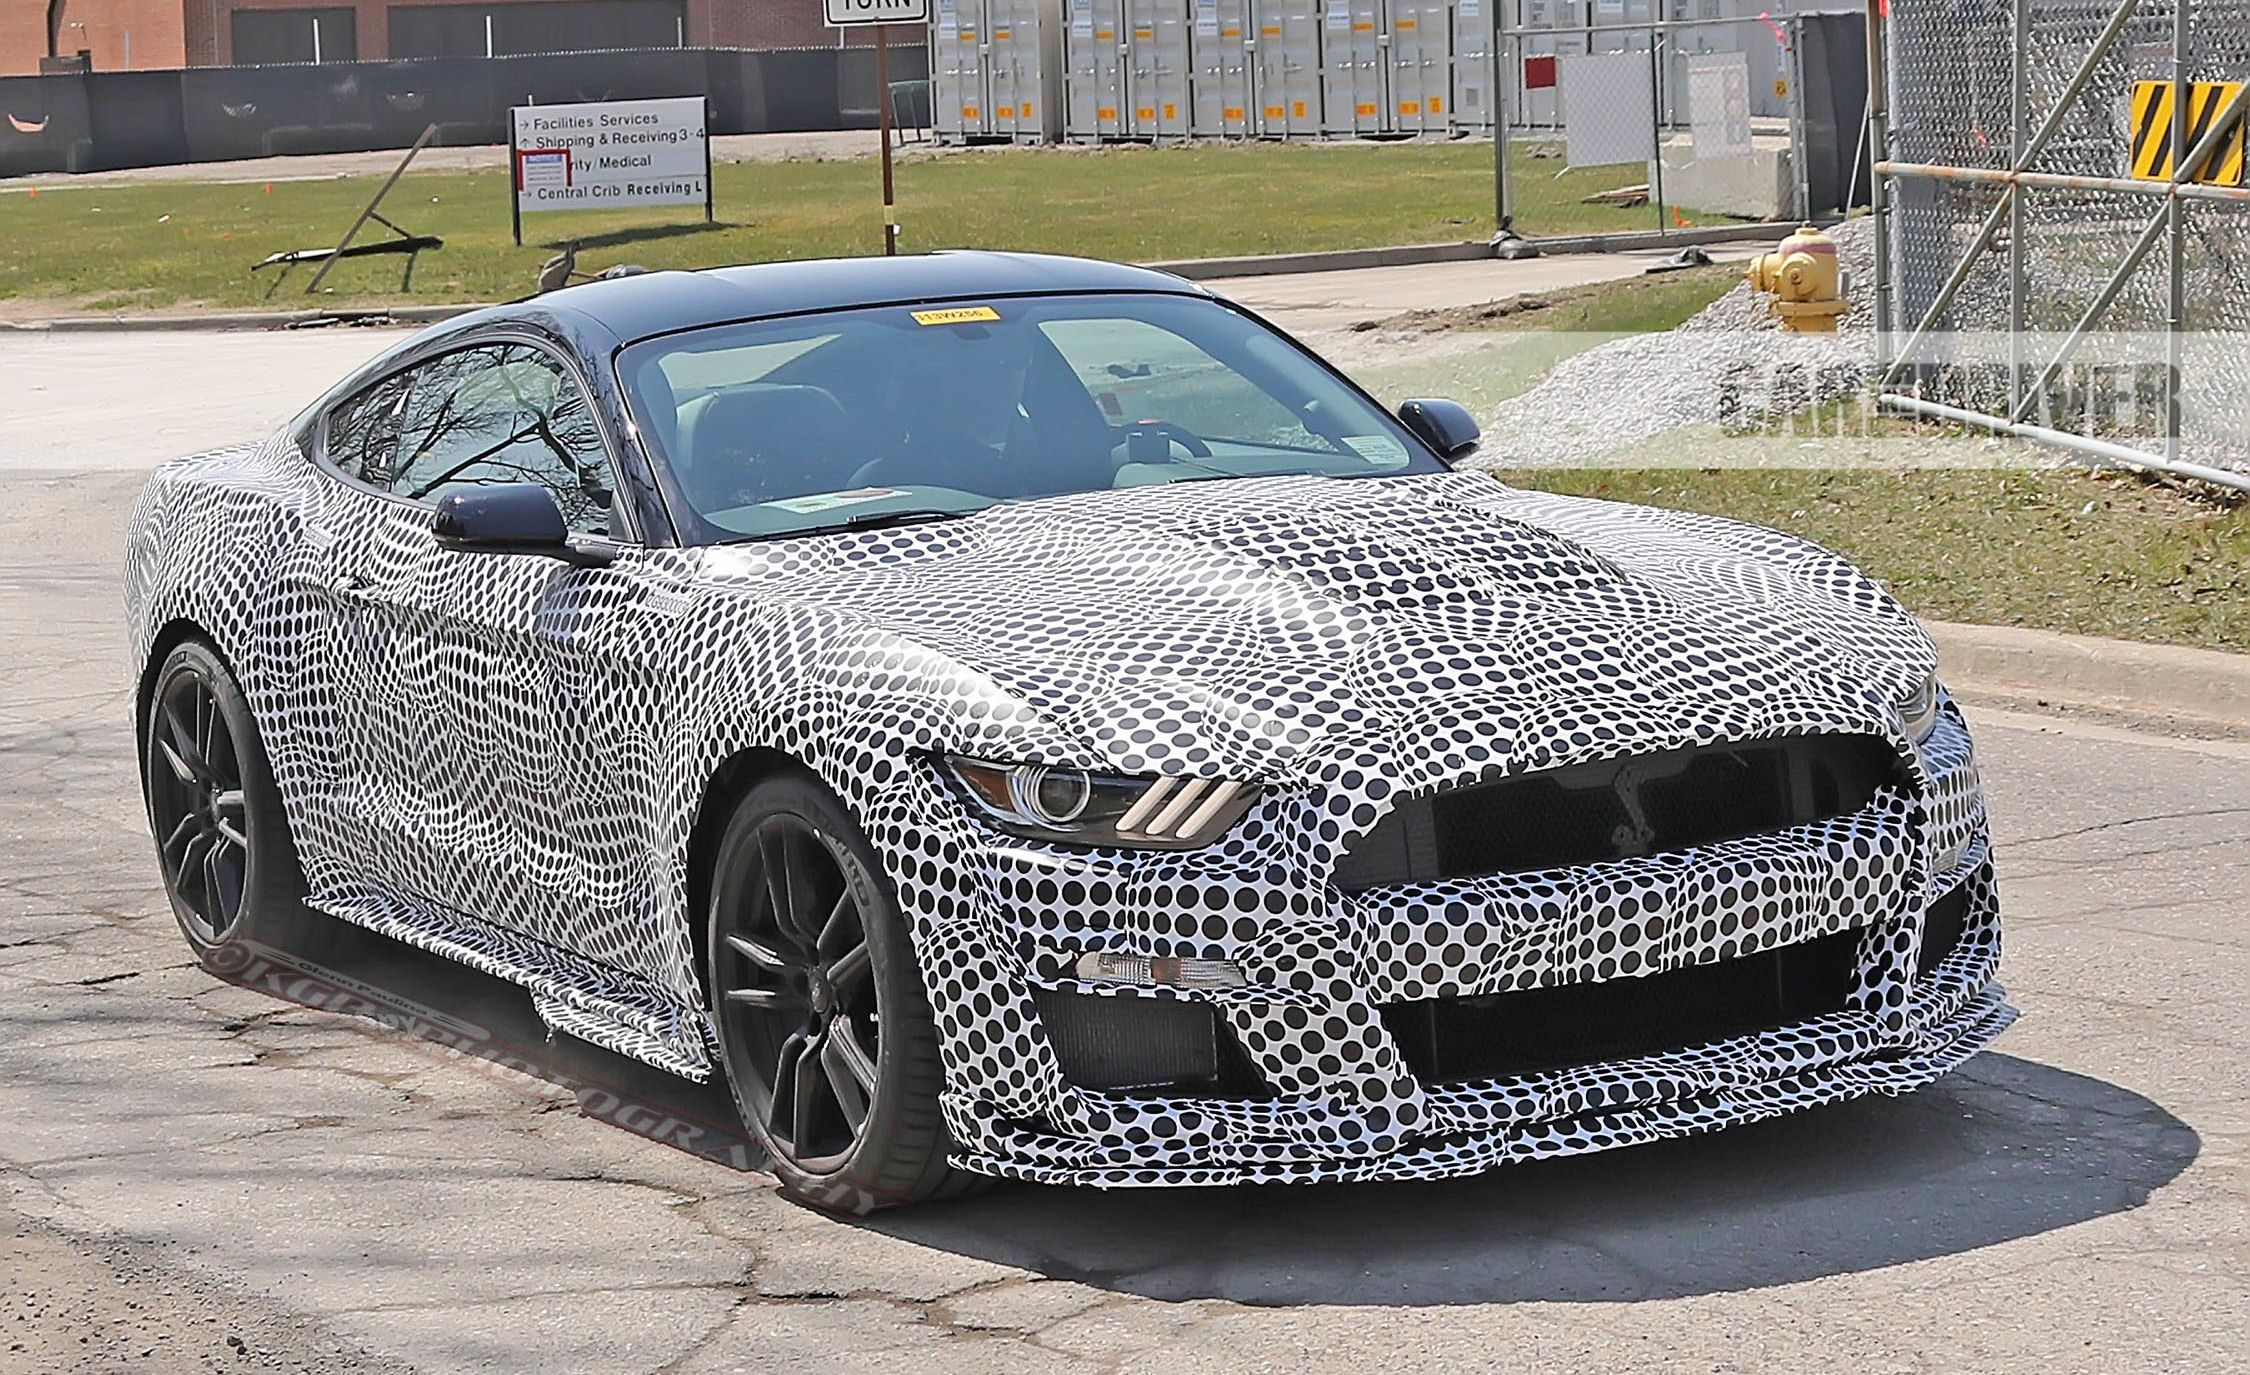 2020 Ford Mustang Shelby Gt500 Spied News Car And Driver